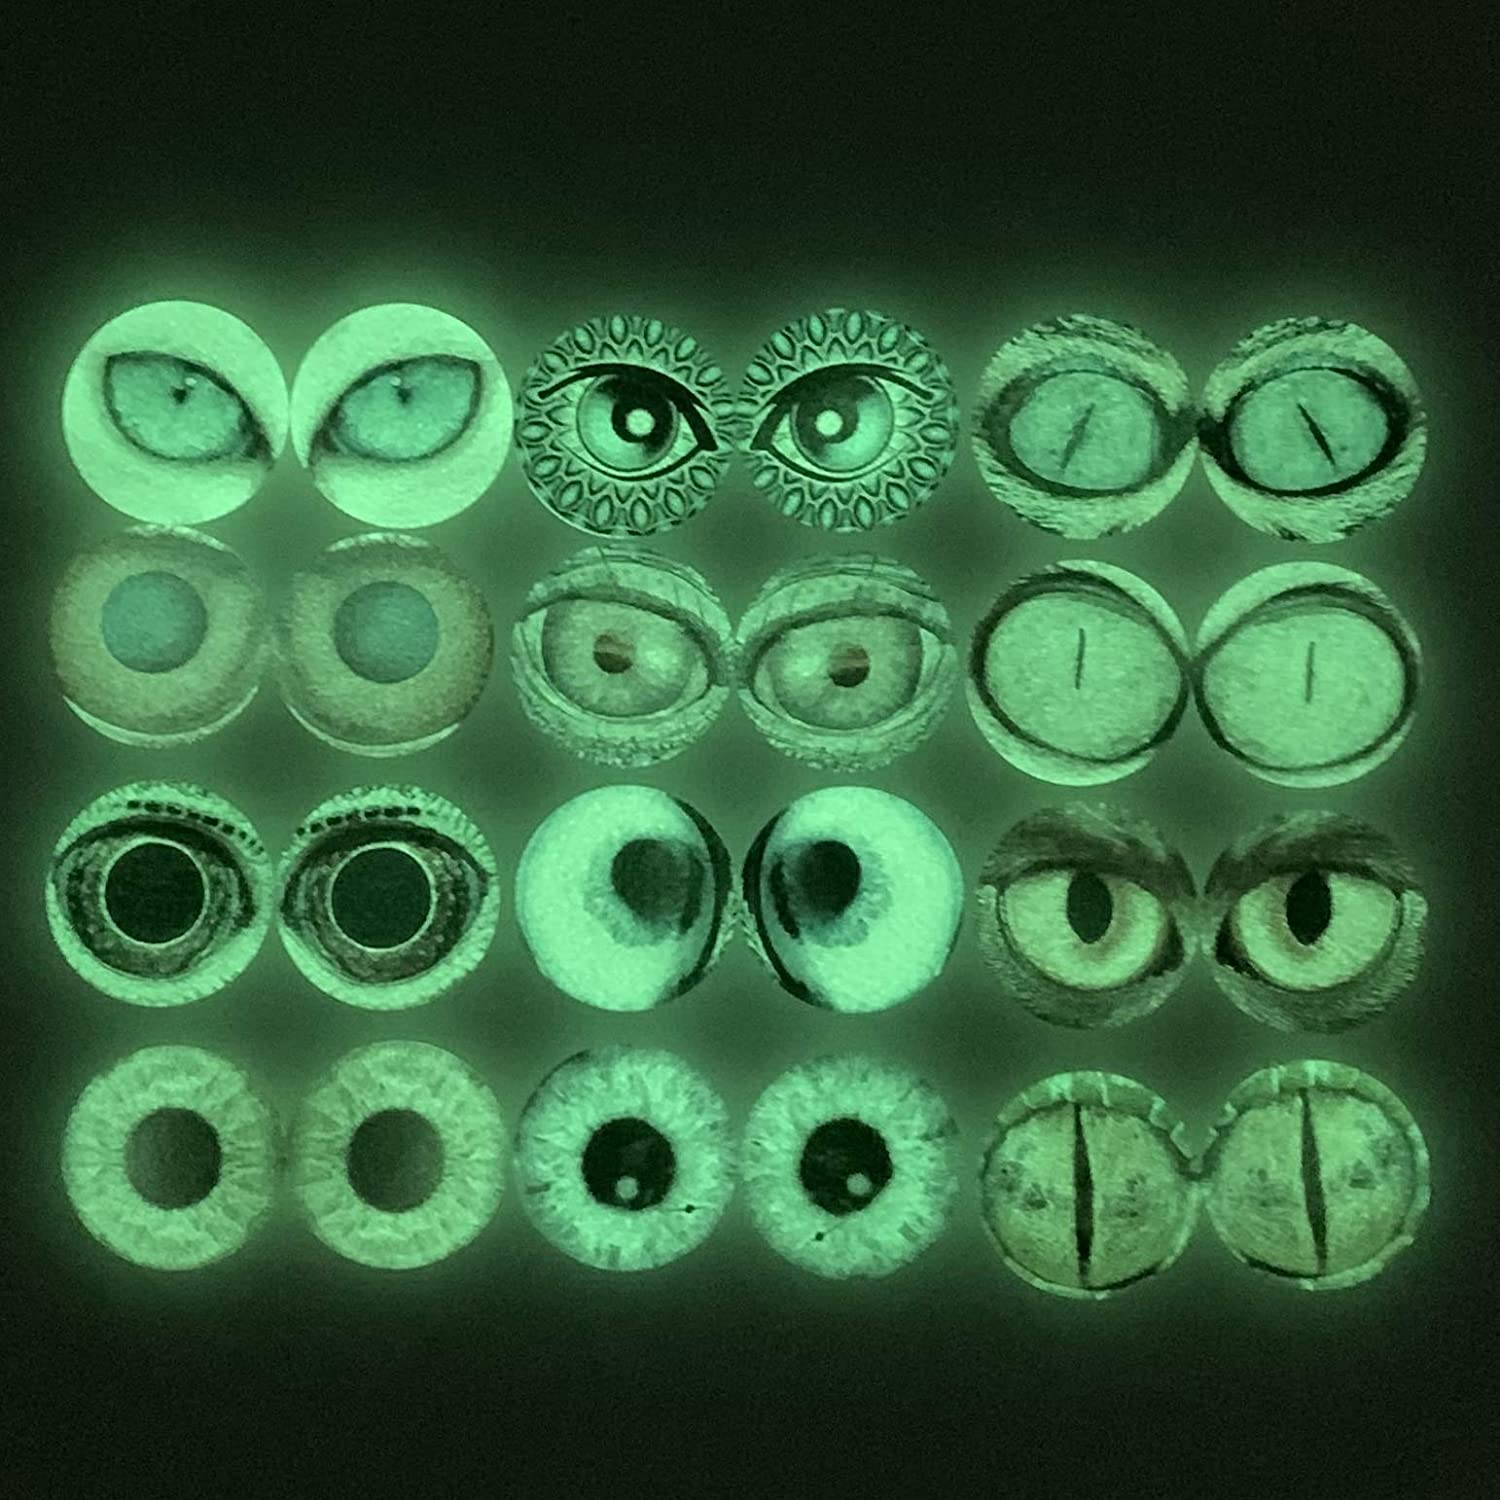 Qeesio 10 Pairs 10mm Glow in the Dark Glass Animal Eyes Round Dome Glass Cabochons Flatback for DIY Craft Clay Eyes 10mm